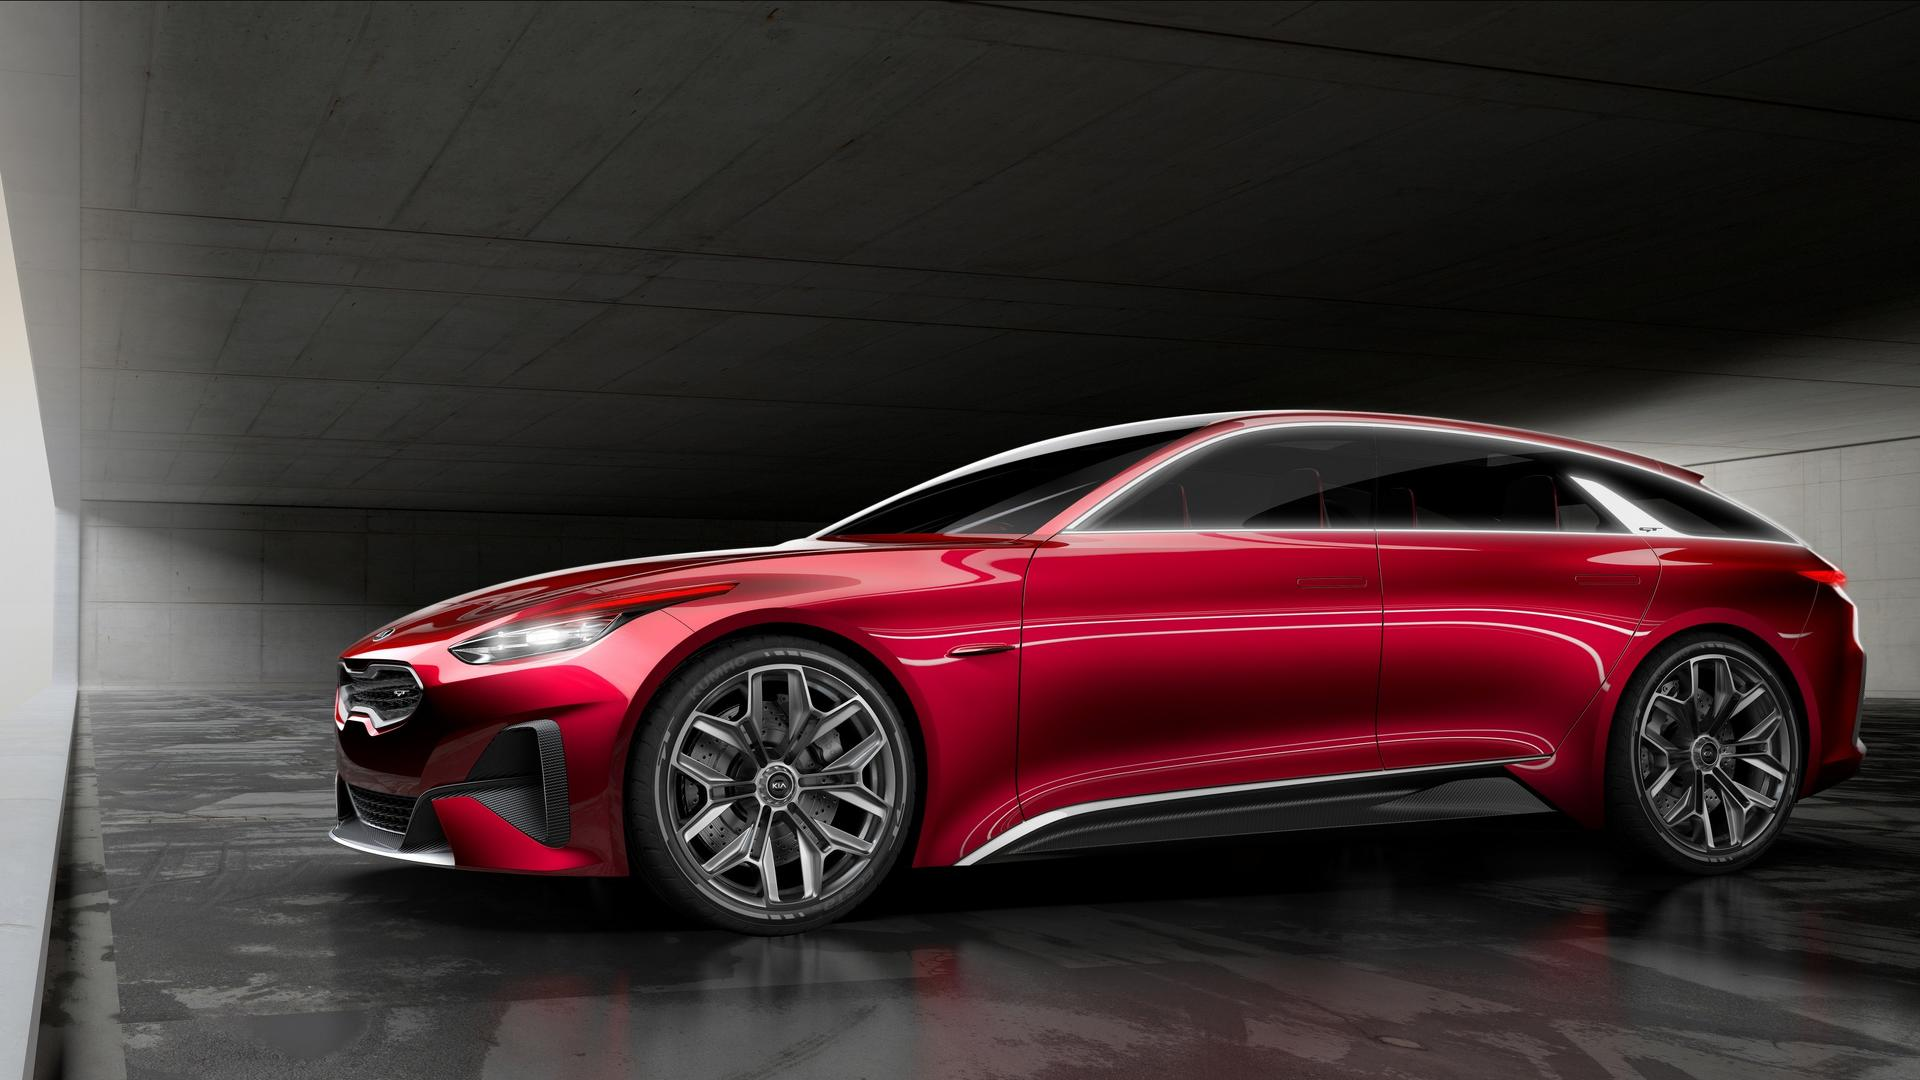 concept cars it s to challenge people s perceptions of kia and start conversations around what is and what could be says guillaume